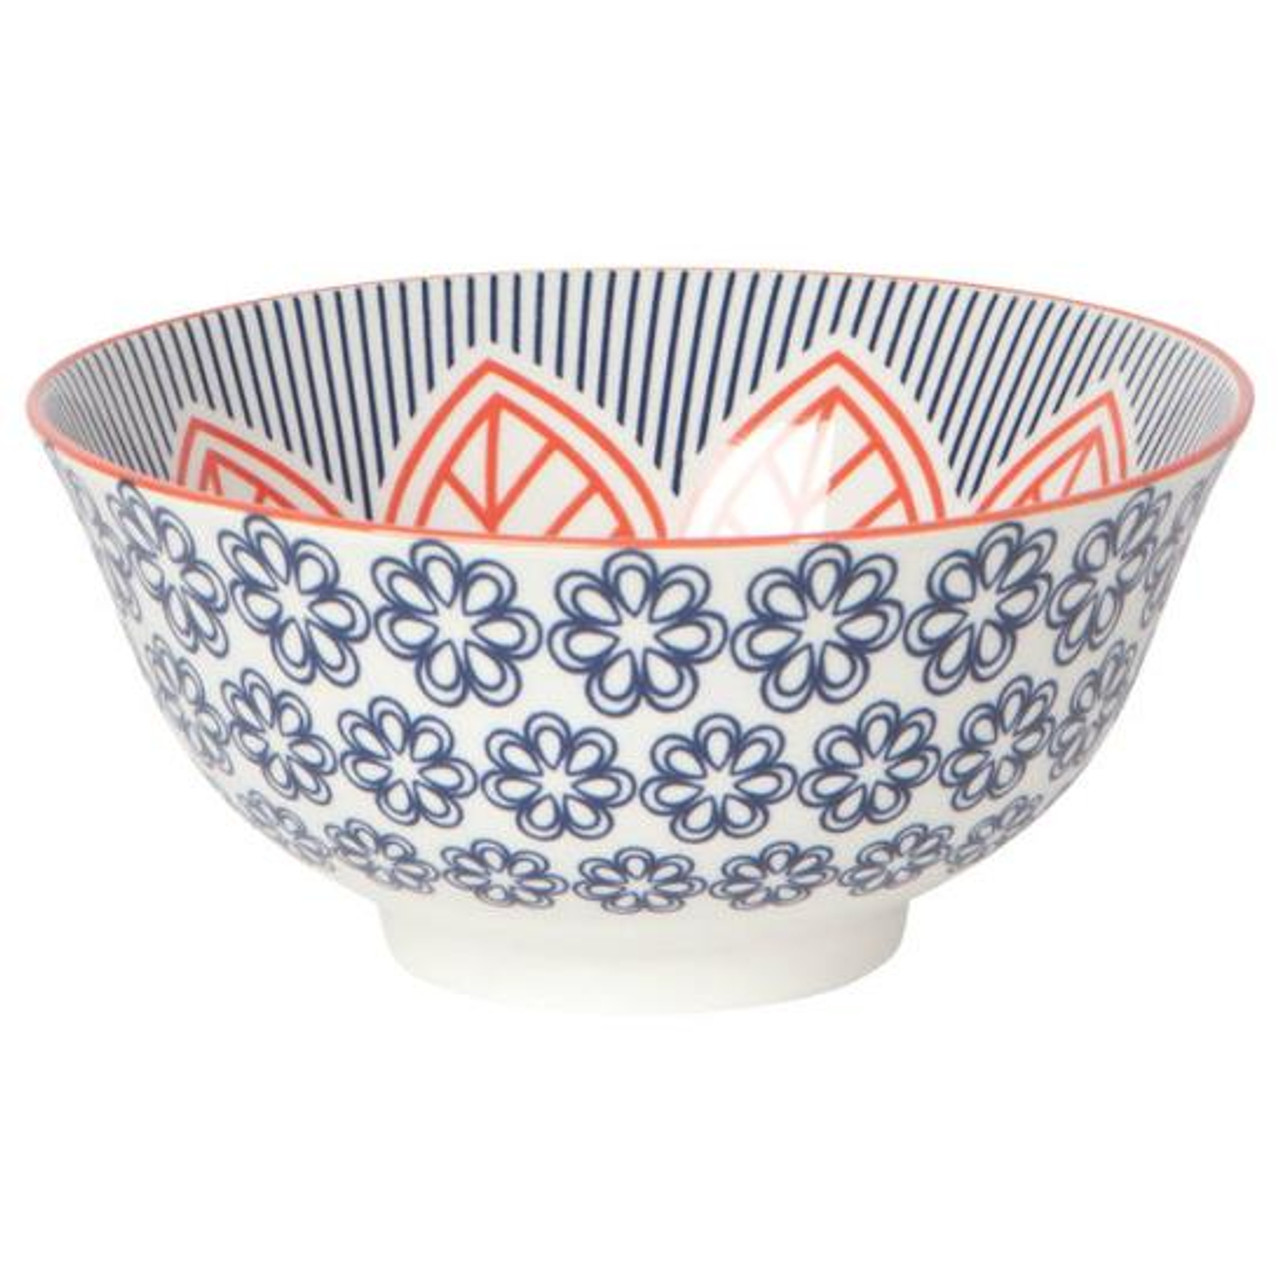 "STAMPED BOWL 6"" - RED FLORAL"